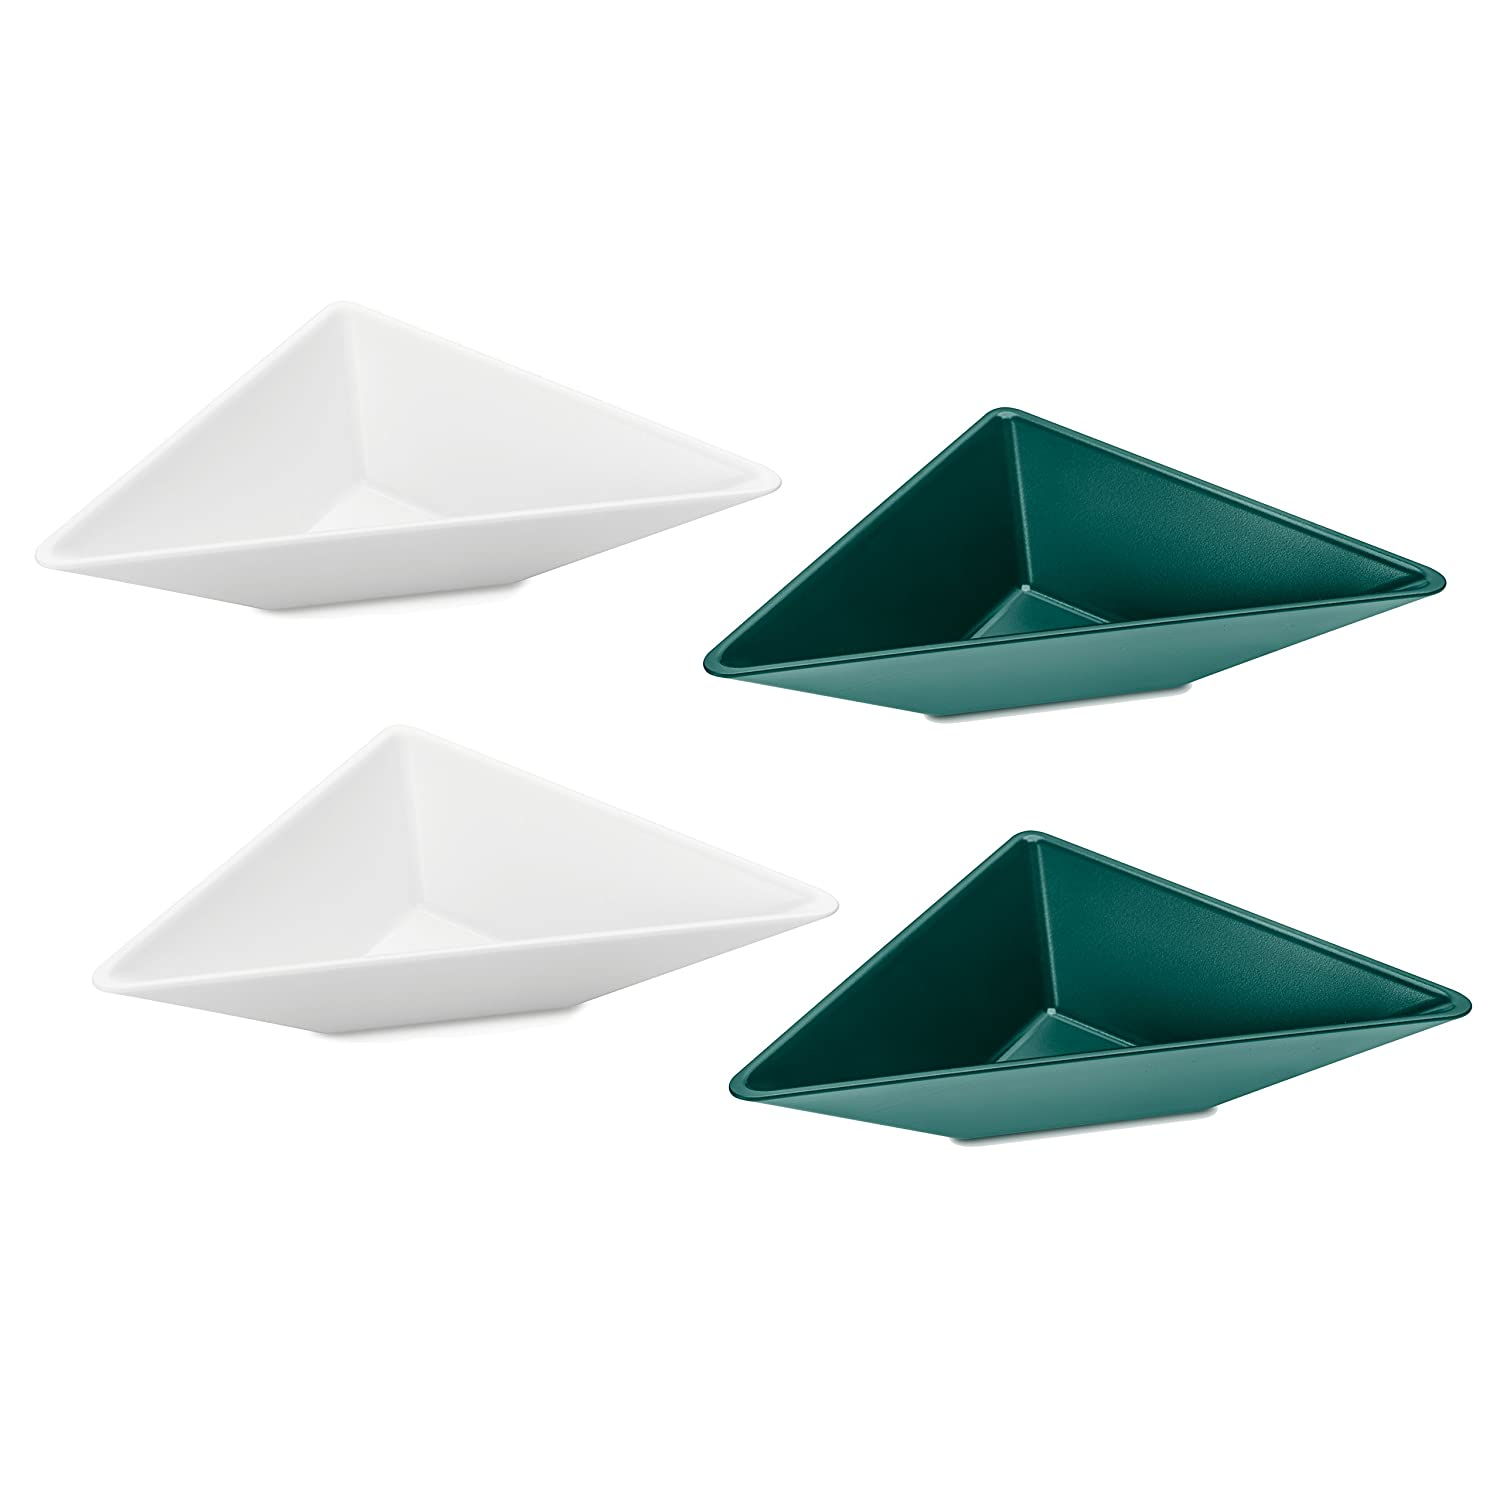 Koziol 3482386 Tangram 1 Serving Bowl Set, One Size, cotton white-emerald green/jungle green